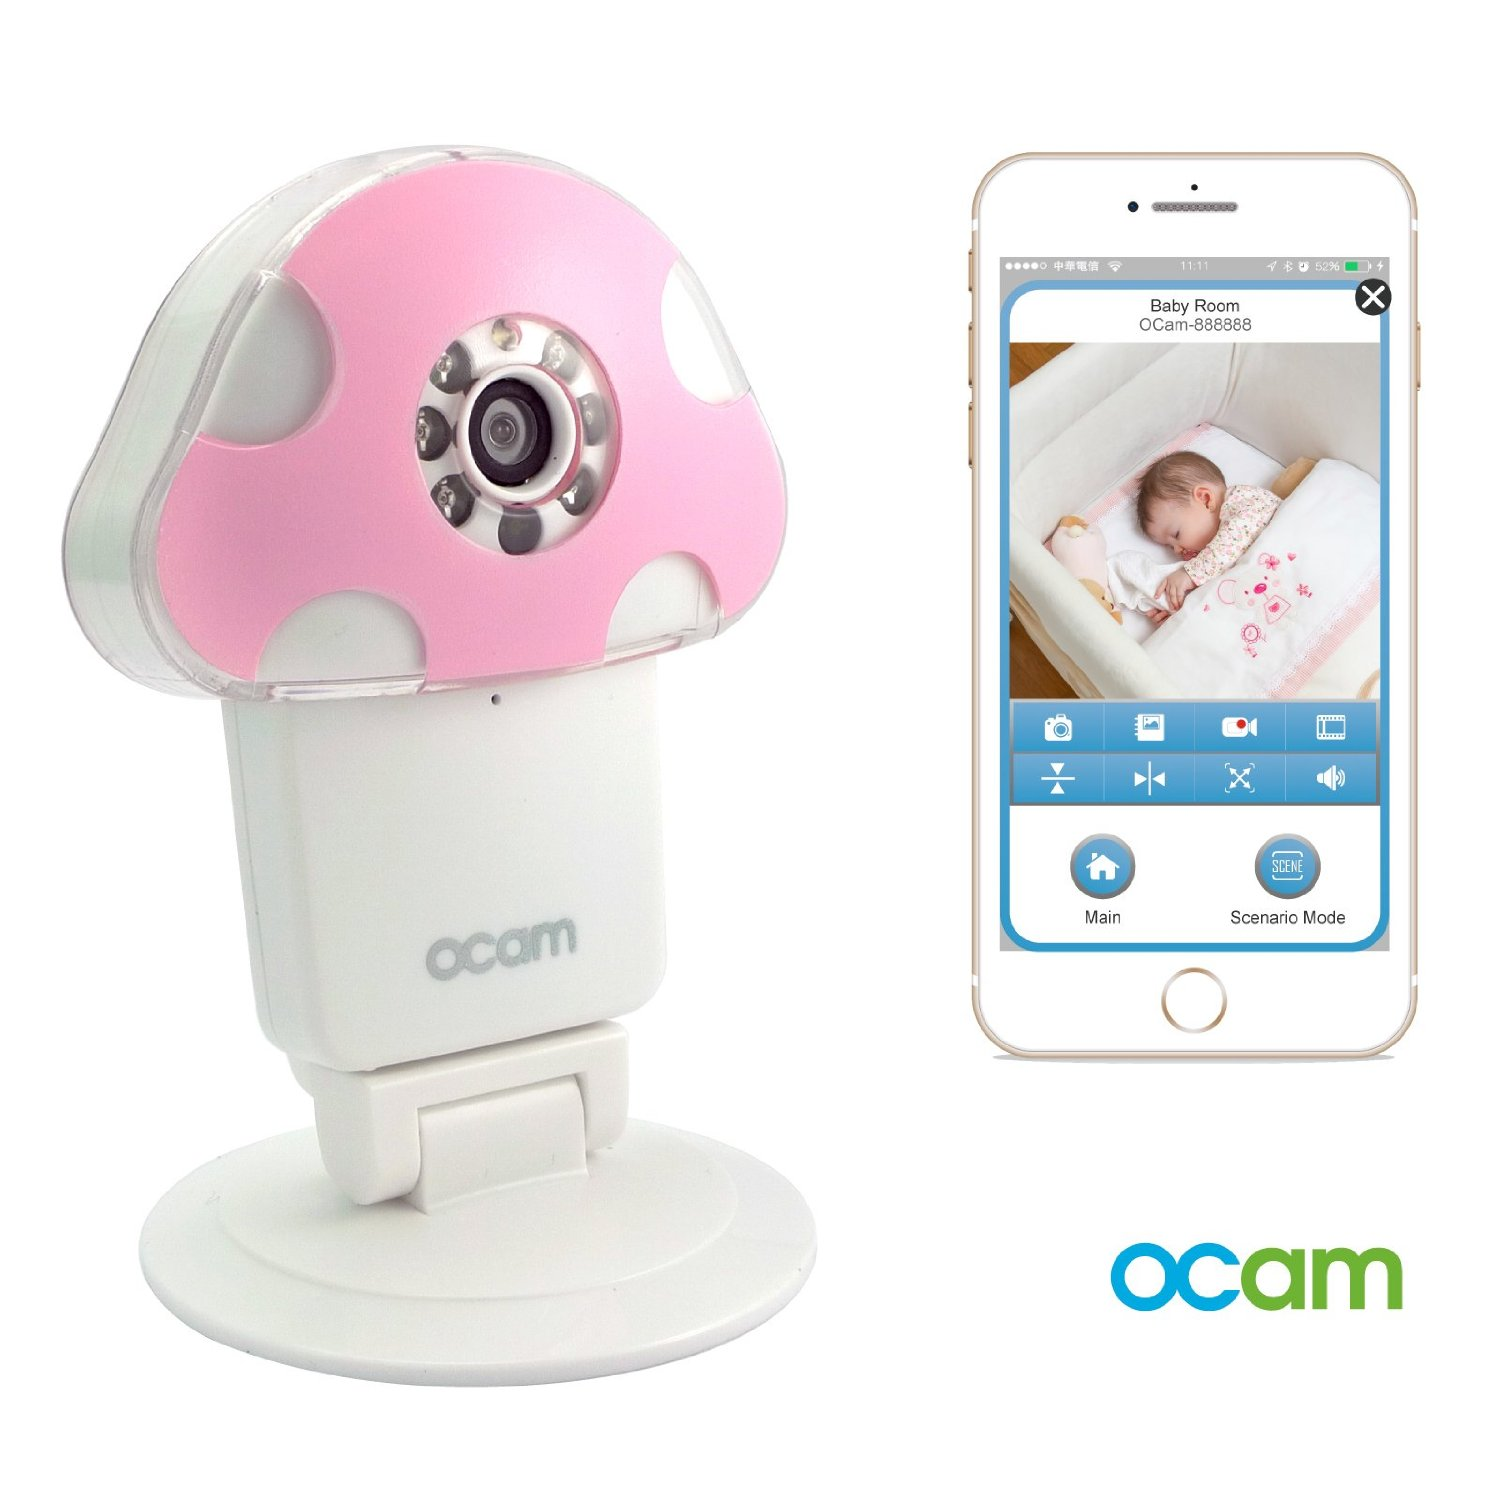 OCam M1 WiFi Wireless Baby Monitor Security Video Camera